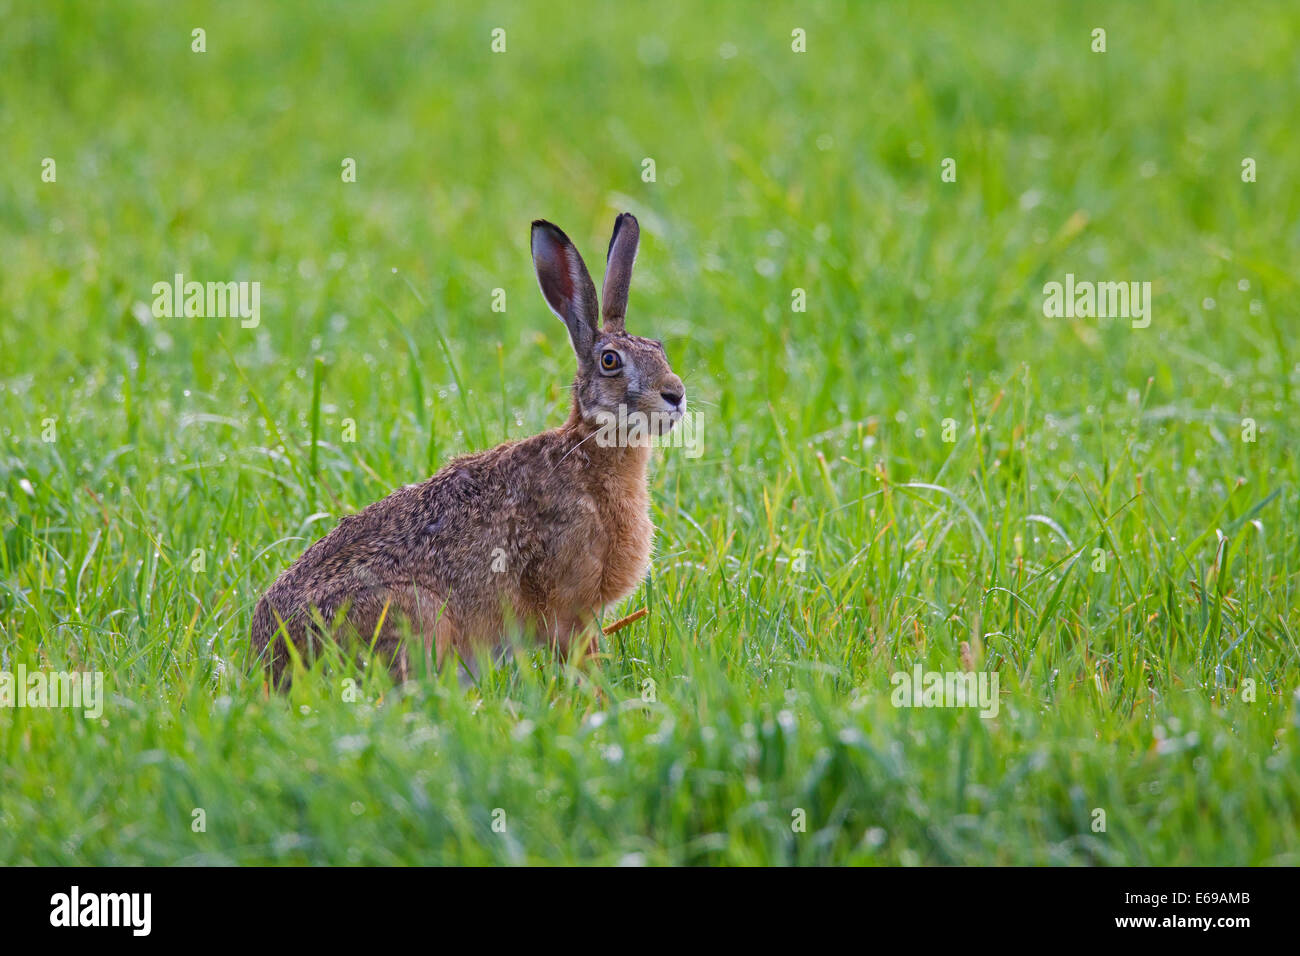 European Brown Hare (Lepus europaeus) sitting in meadow - Stock Image